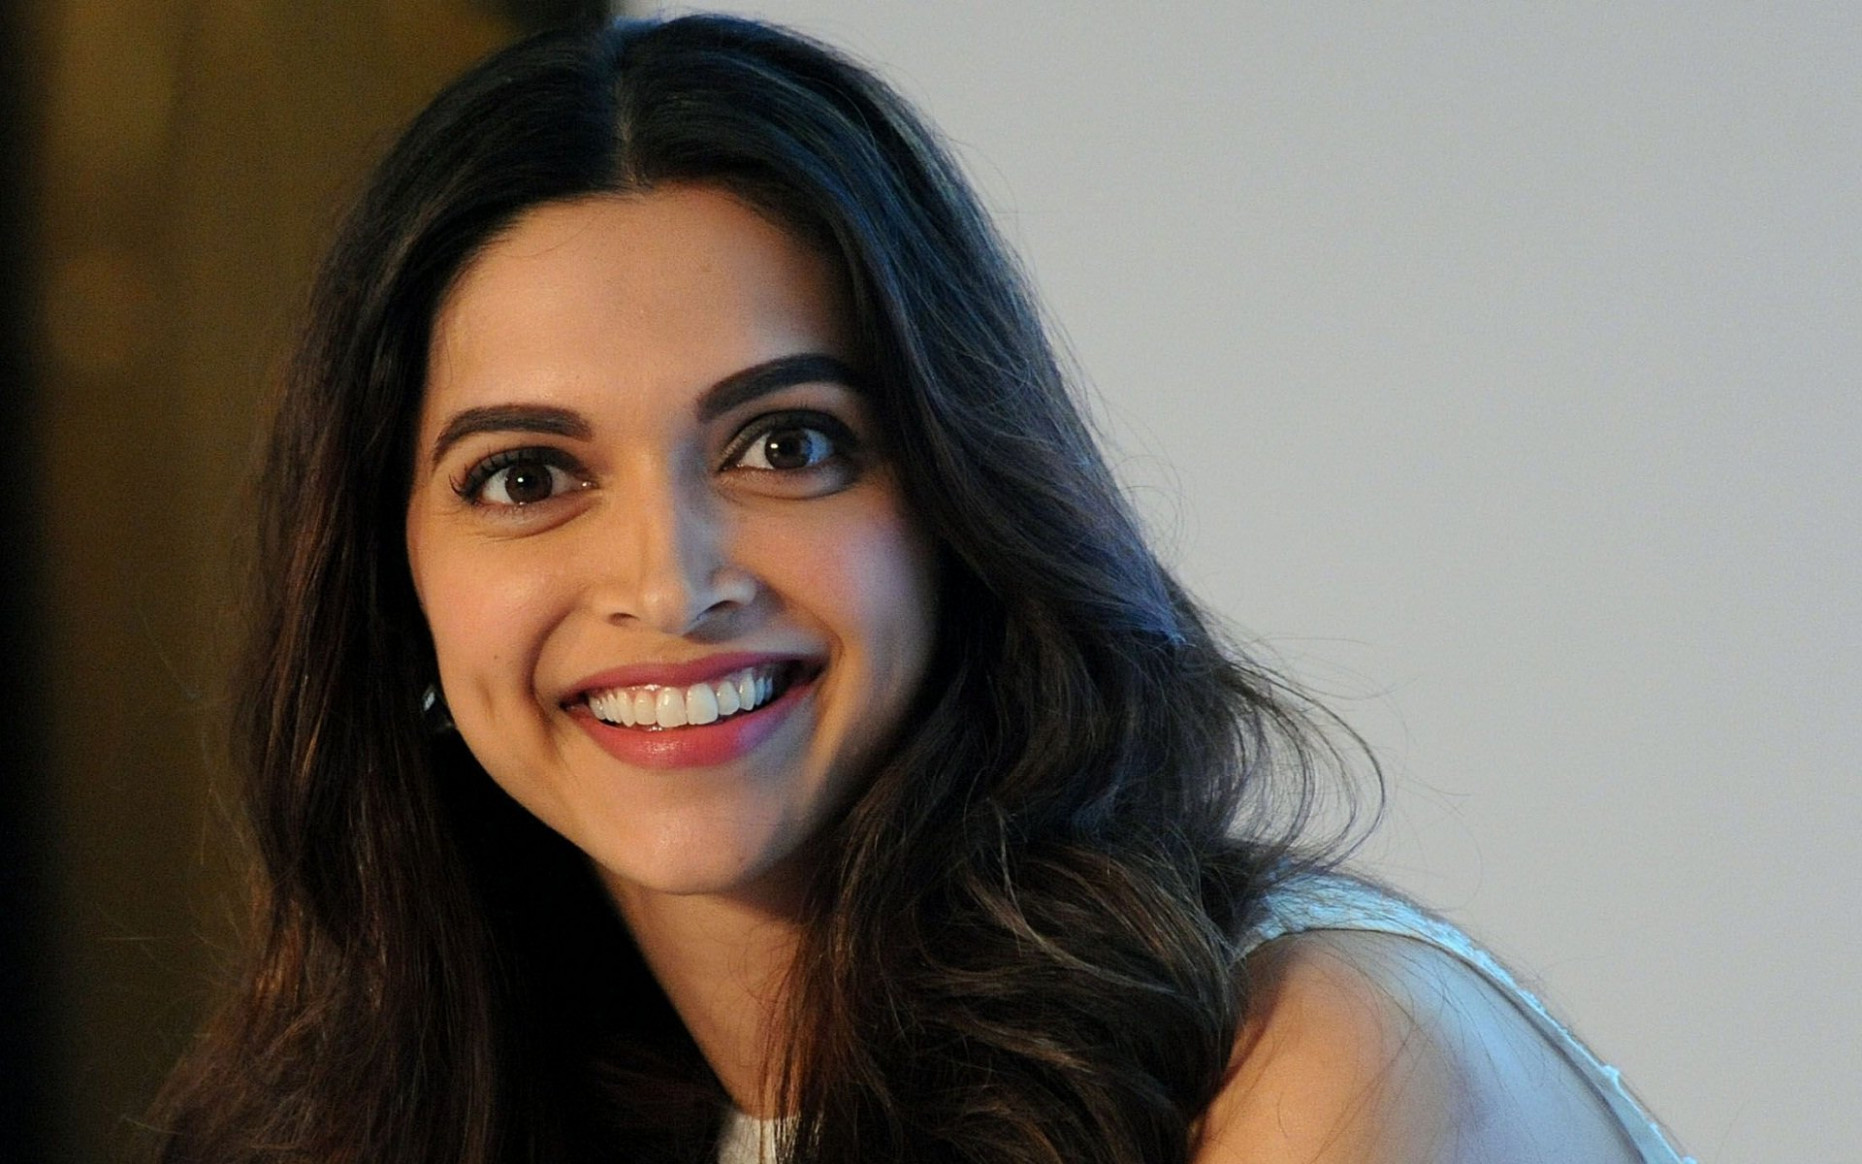 Deepika Padukone very happy with beautiful smile face ...